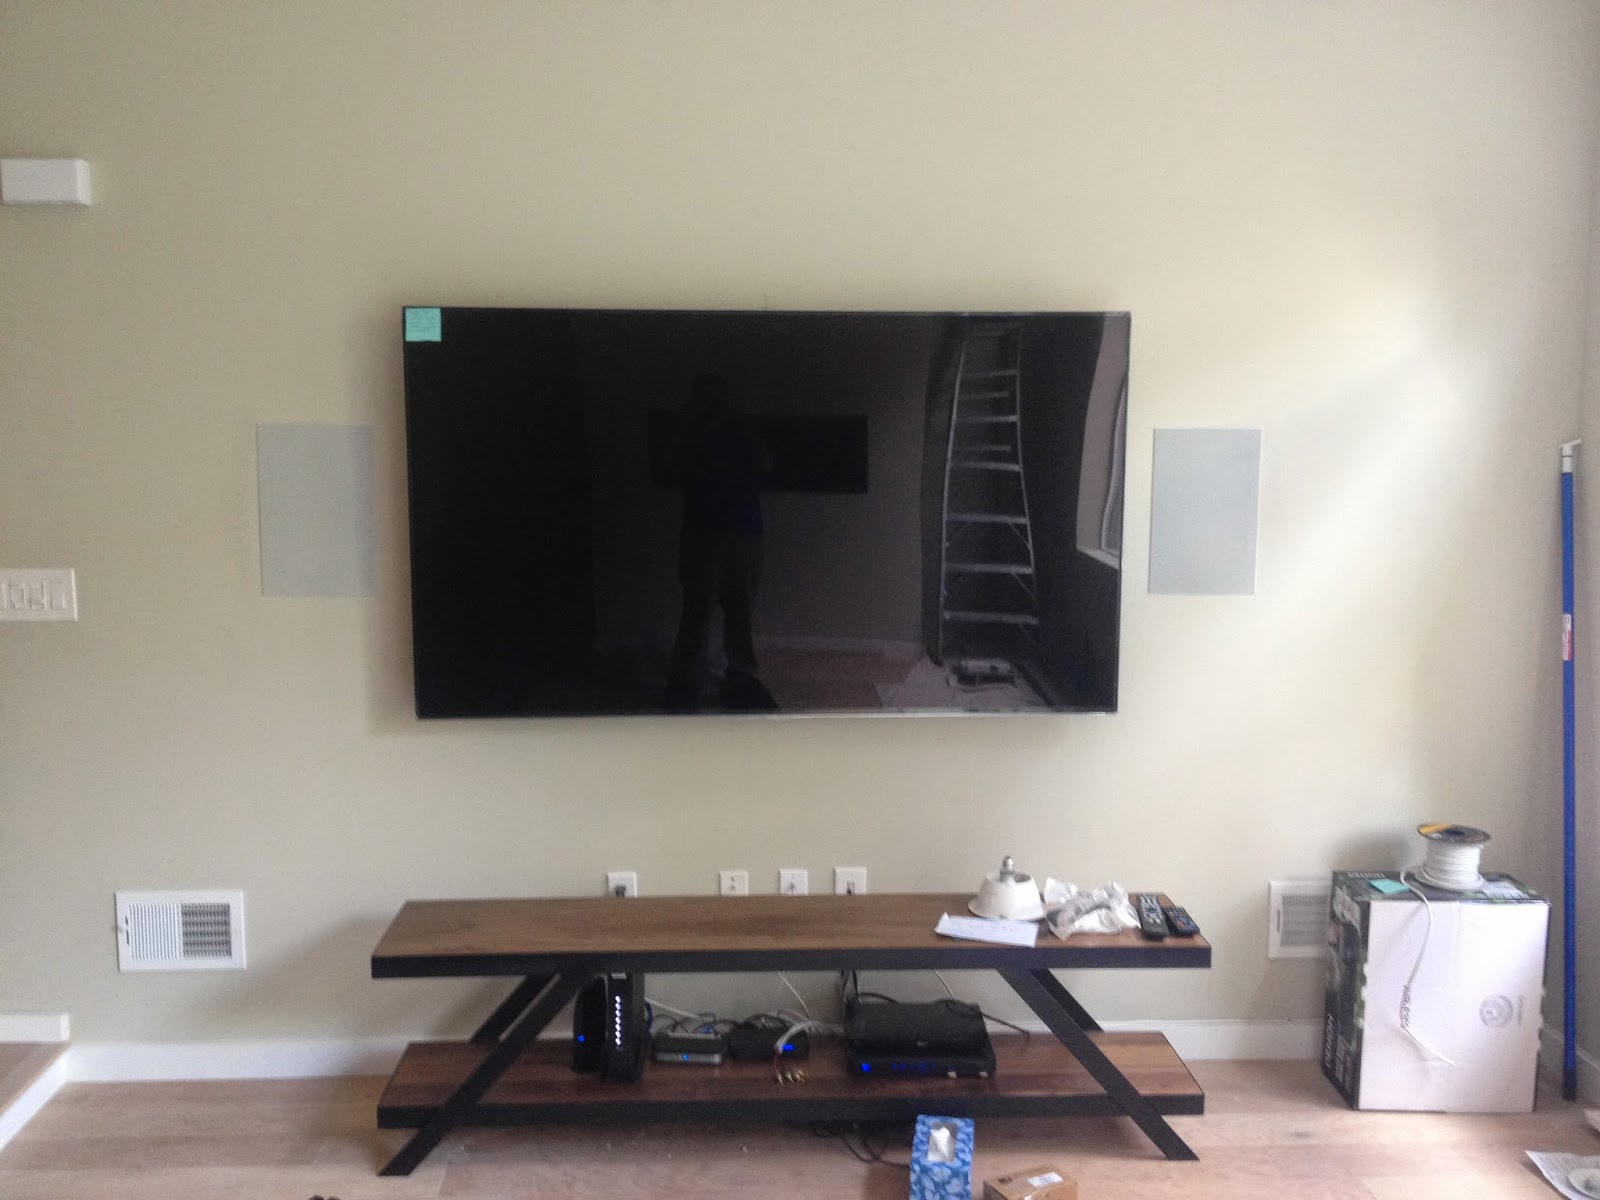 Generation 3 Electric, professional TV installation and wires hidden